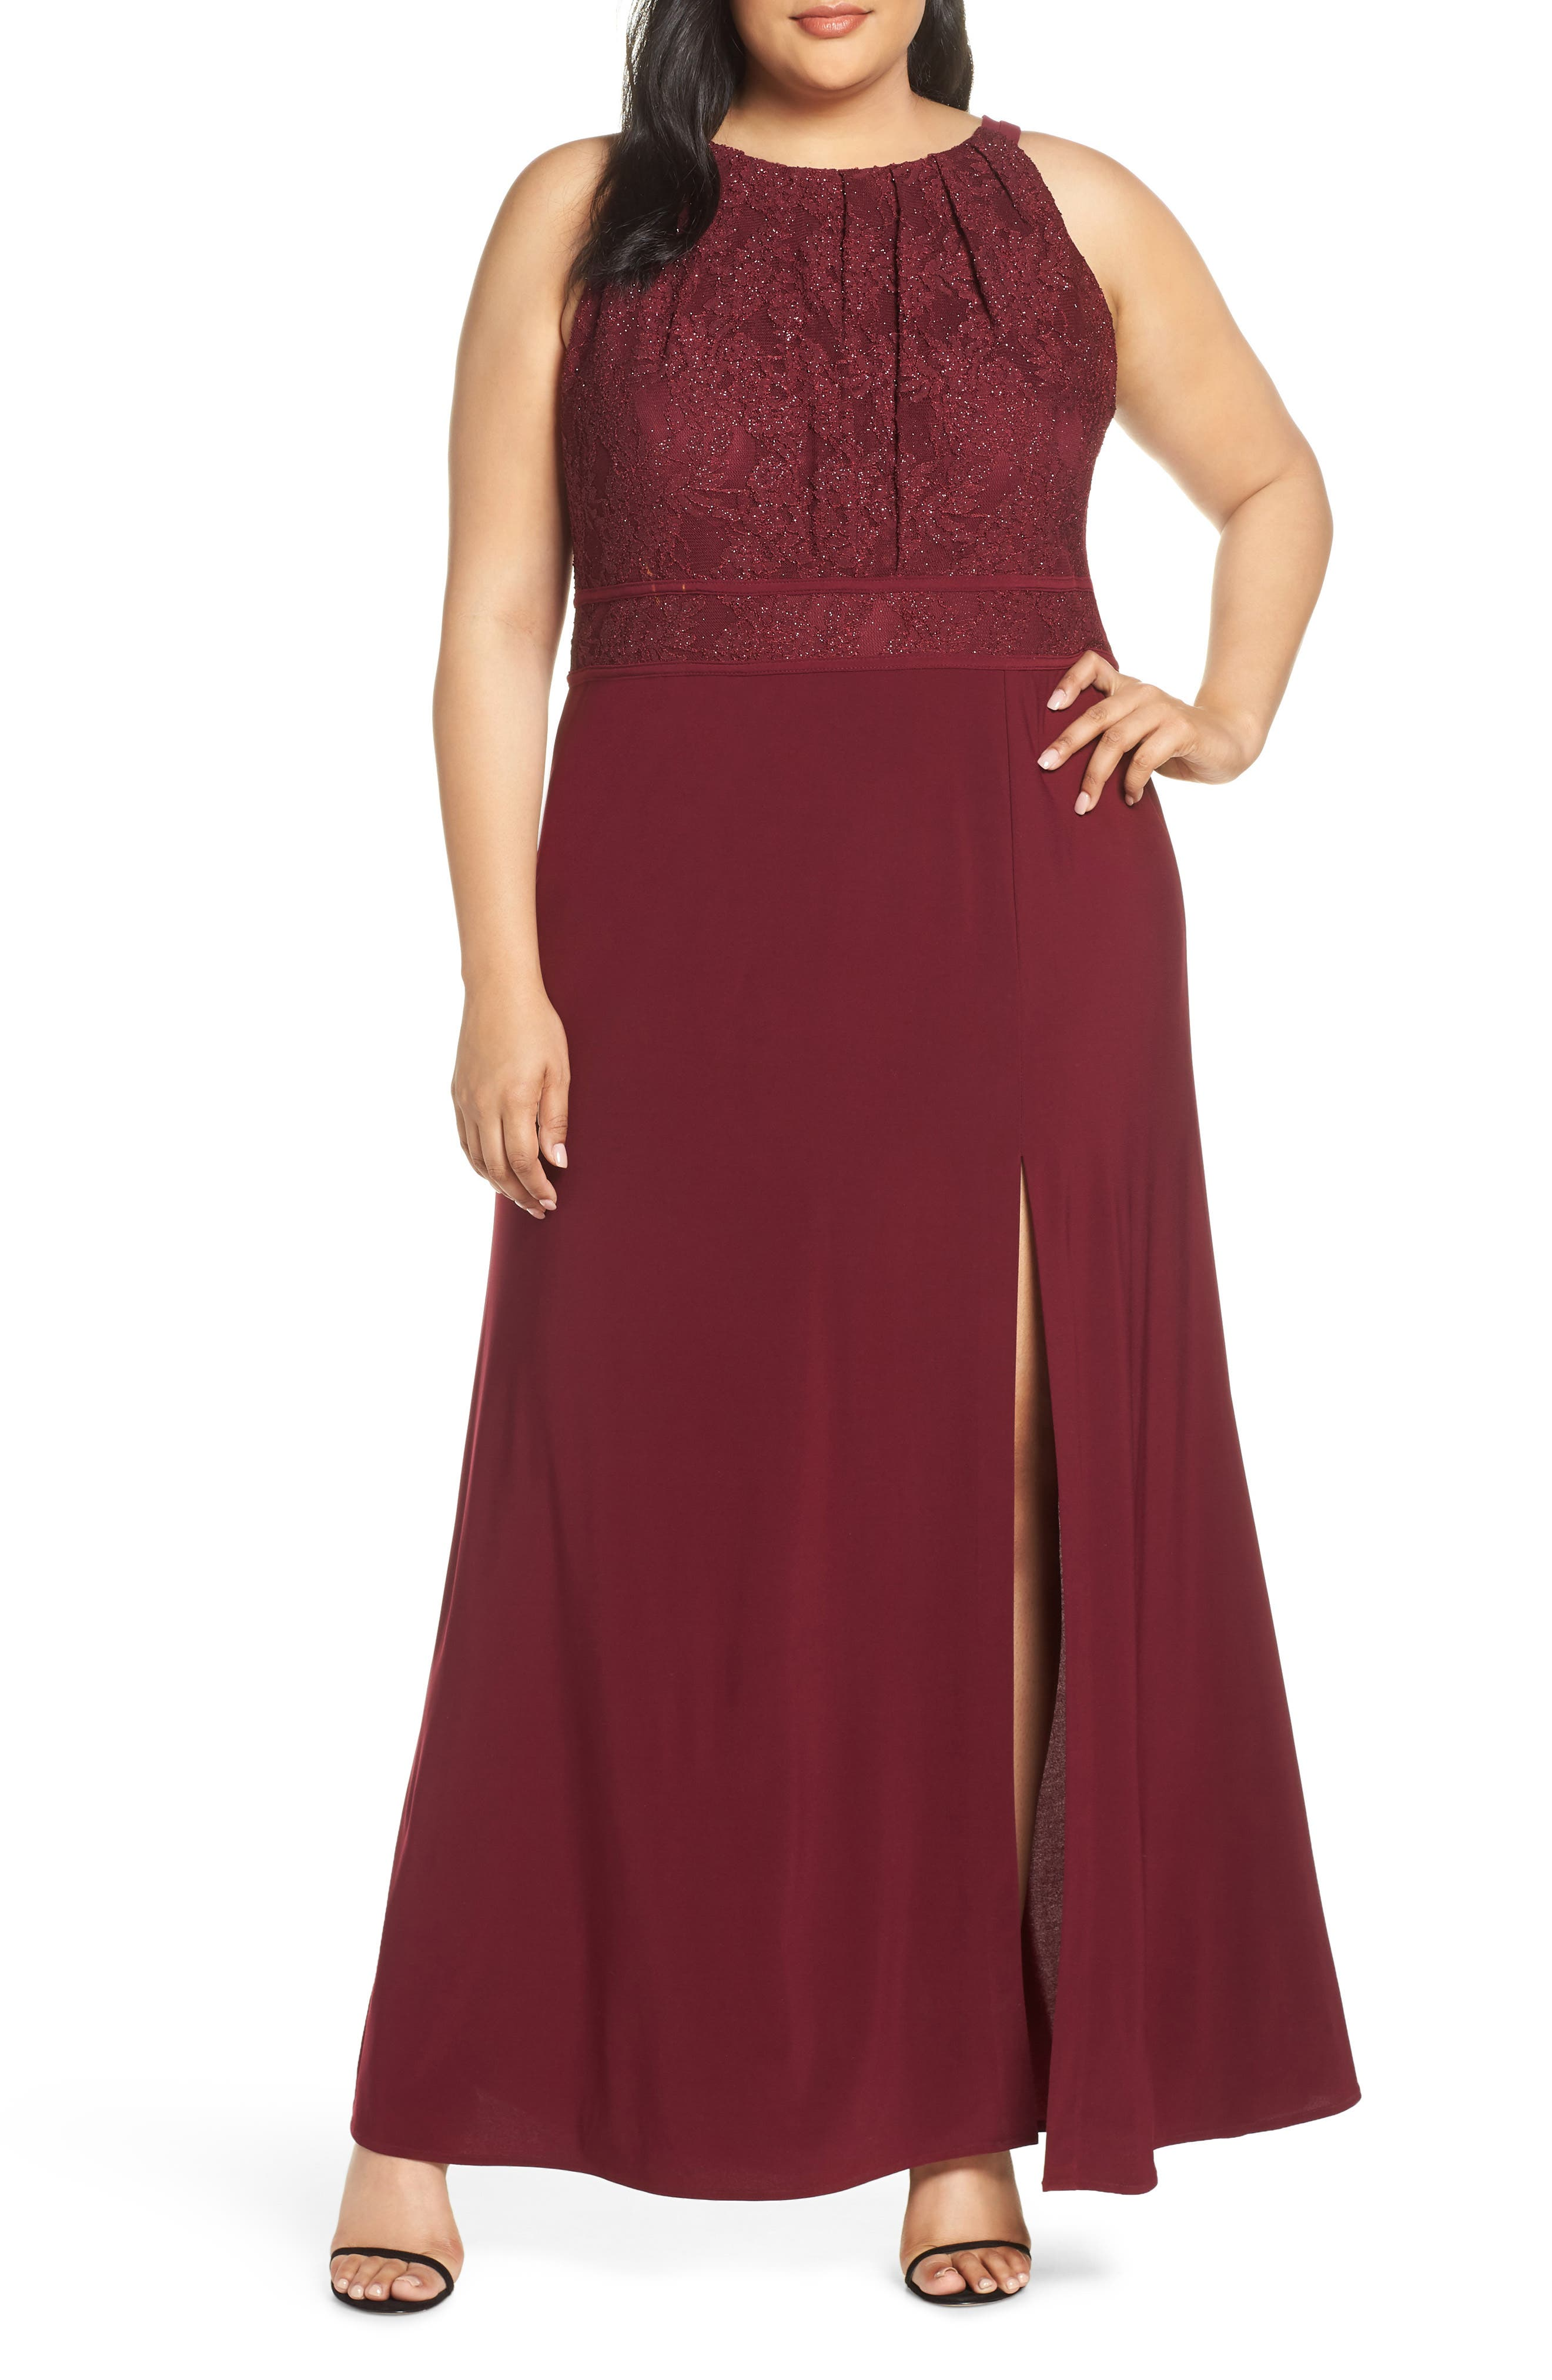 Plus Size Morgan And Co. Pleat Lace Bodice Evening Dress, Burgundy